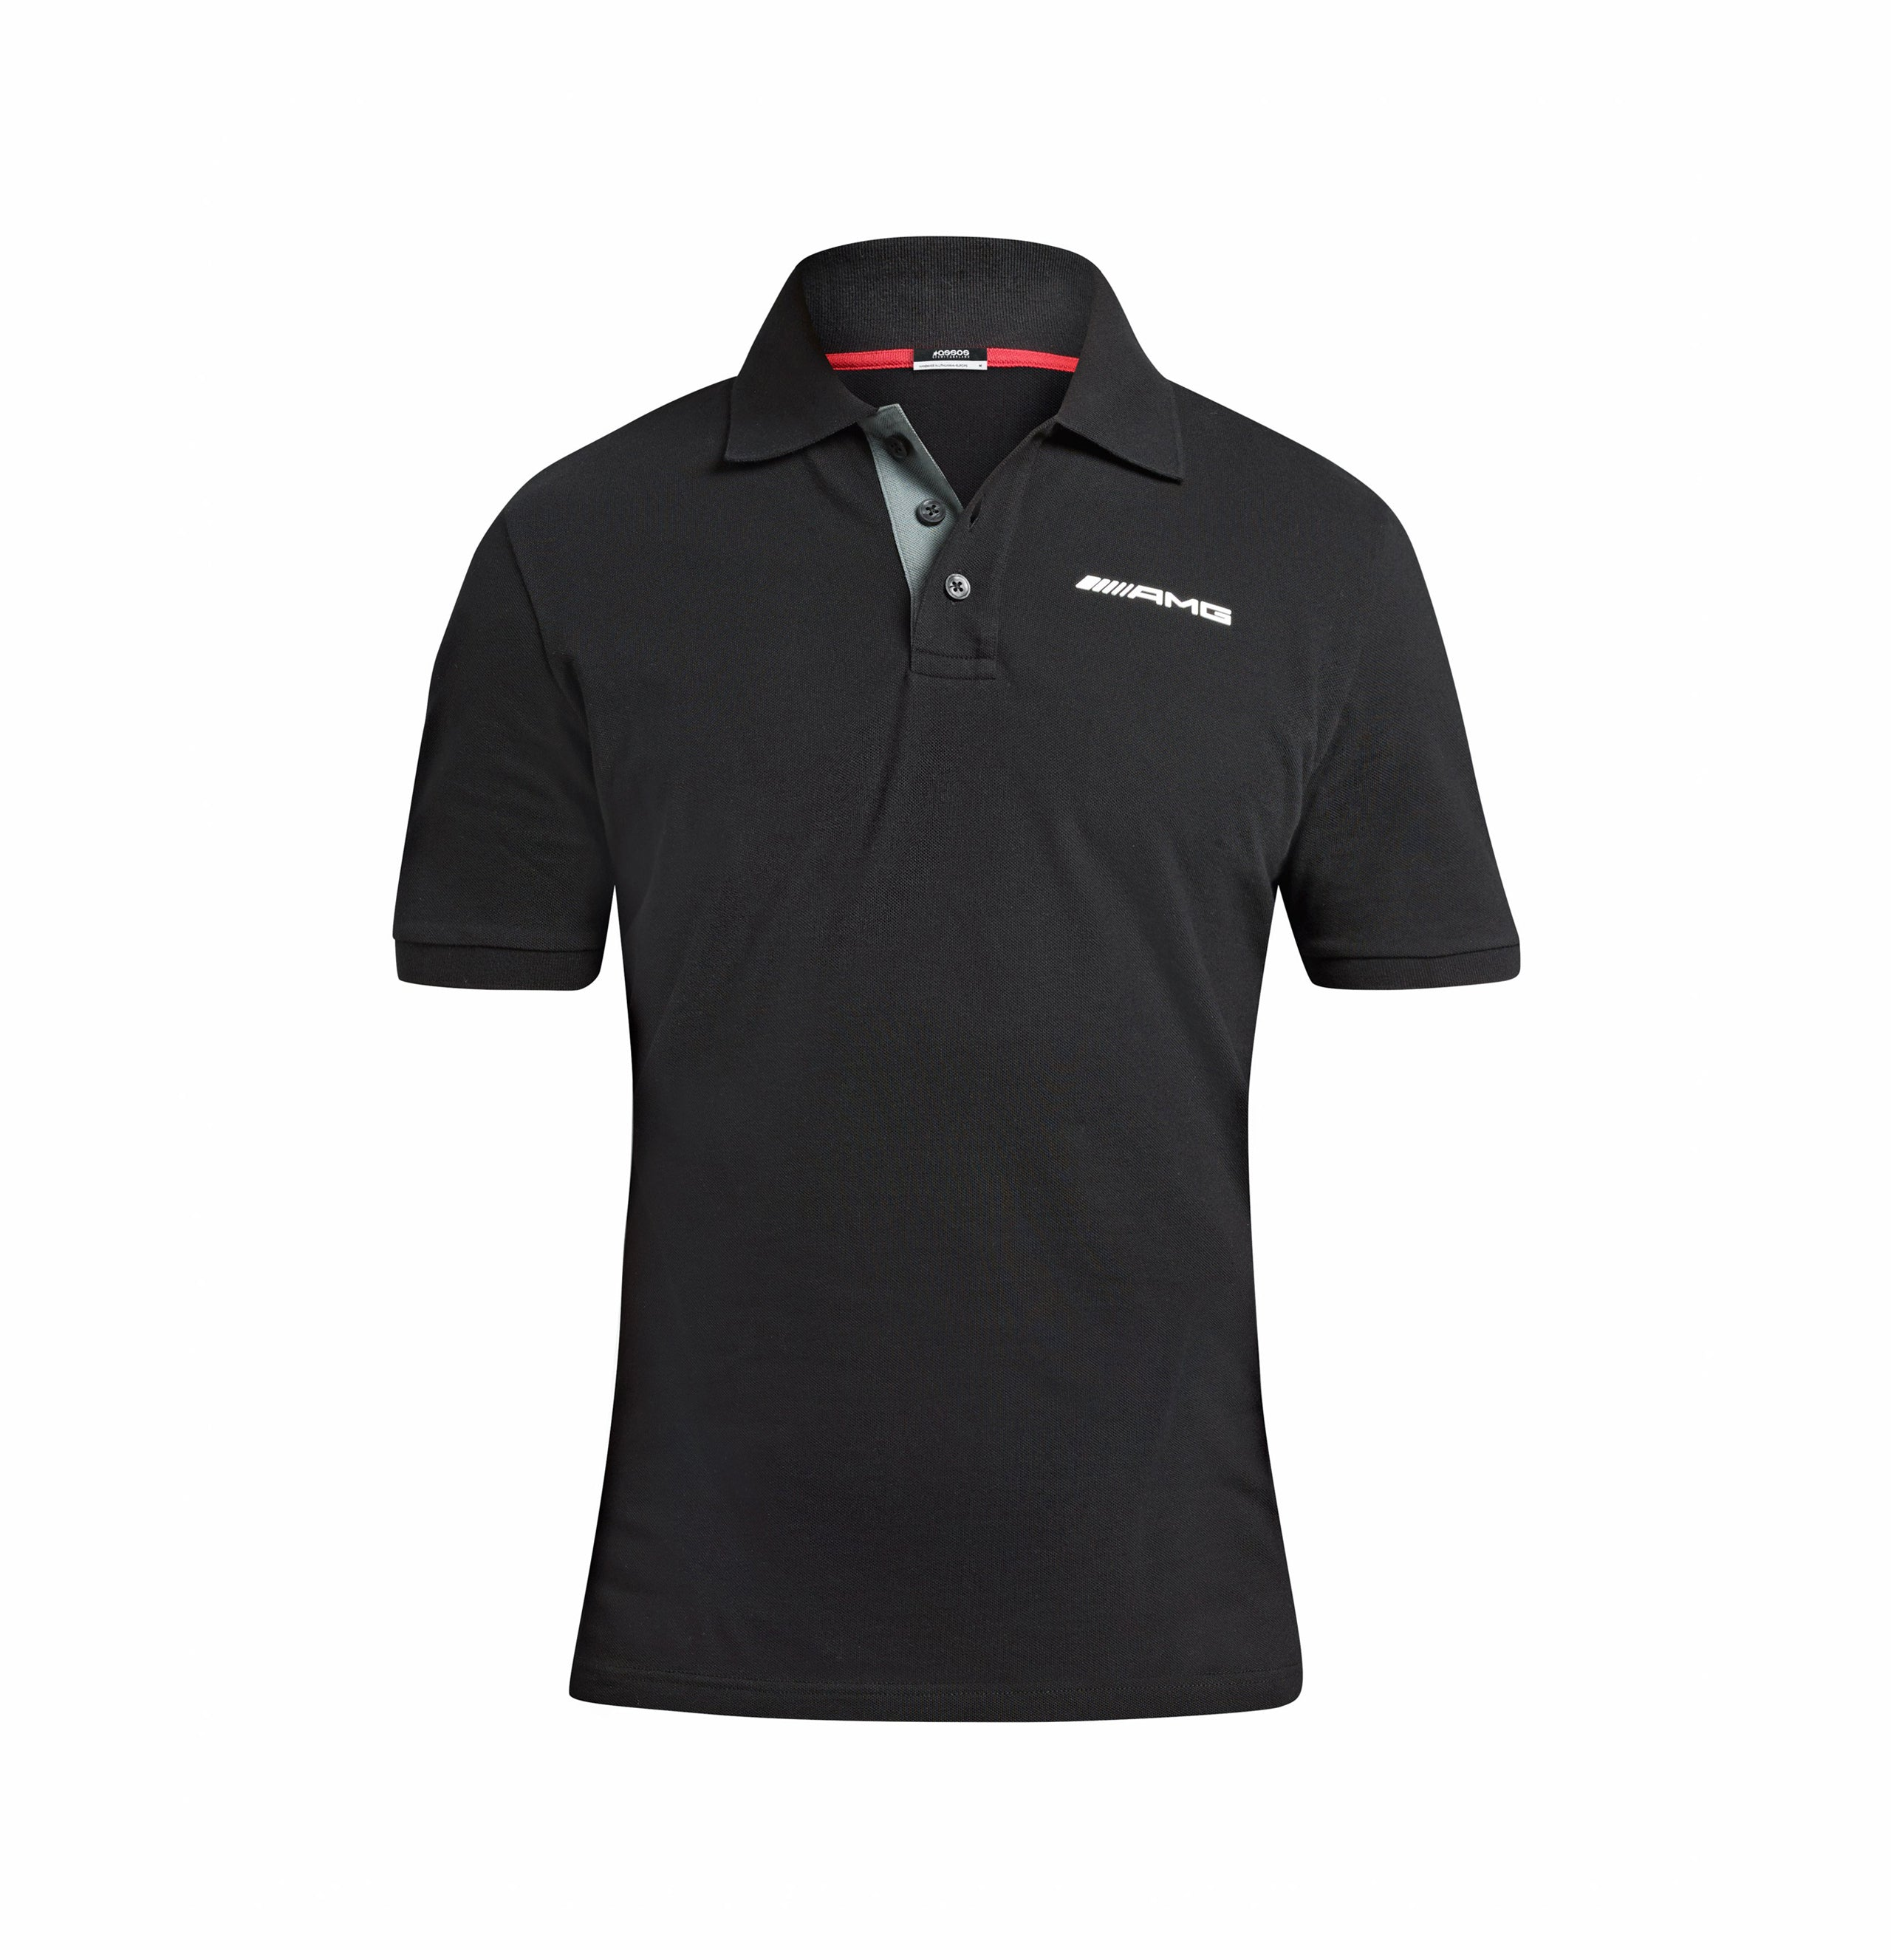 AMG POLO SHIRT SPORT LADY bundle